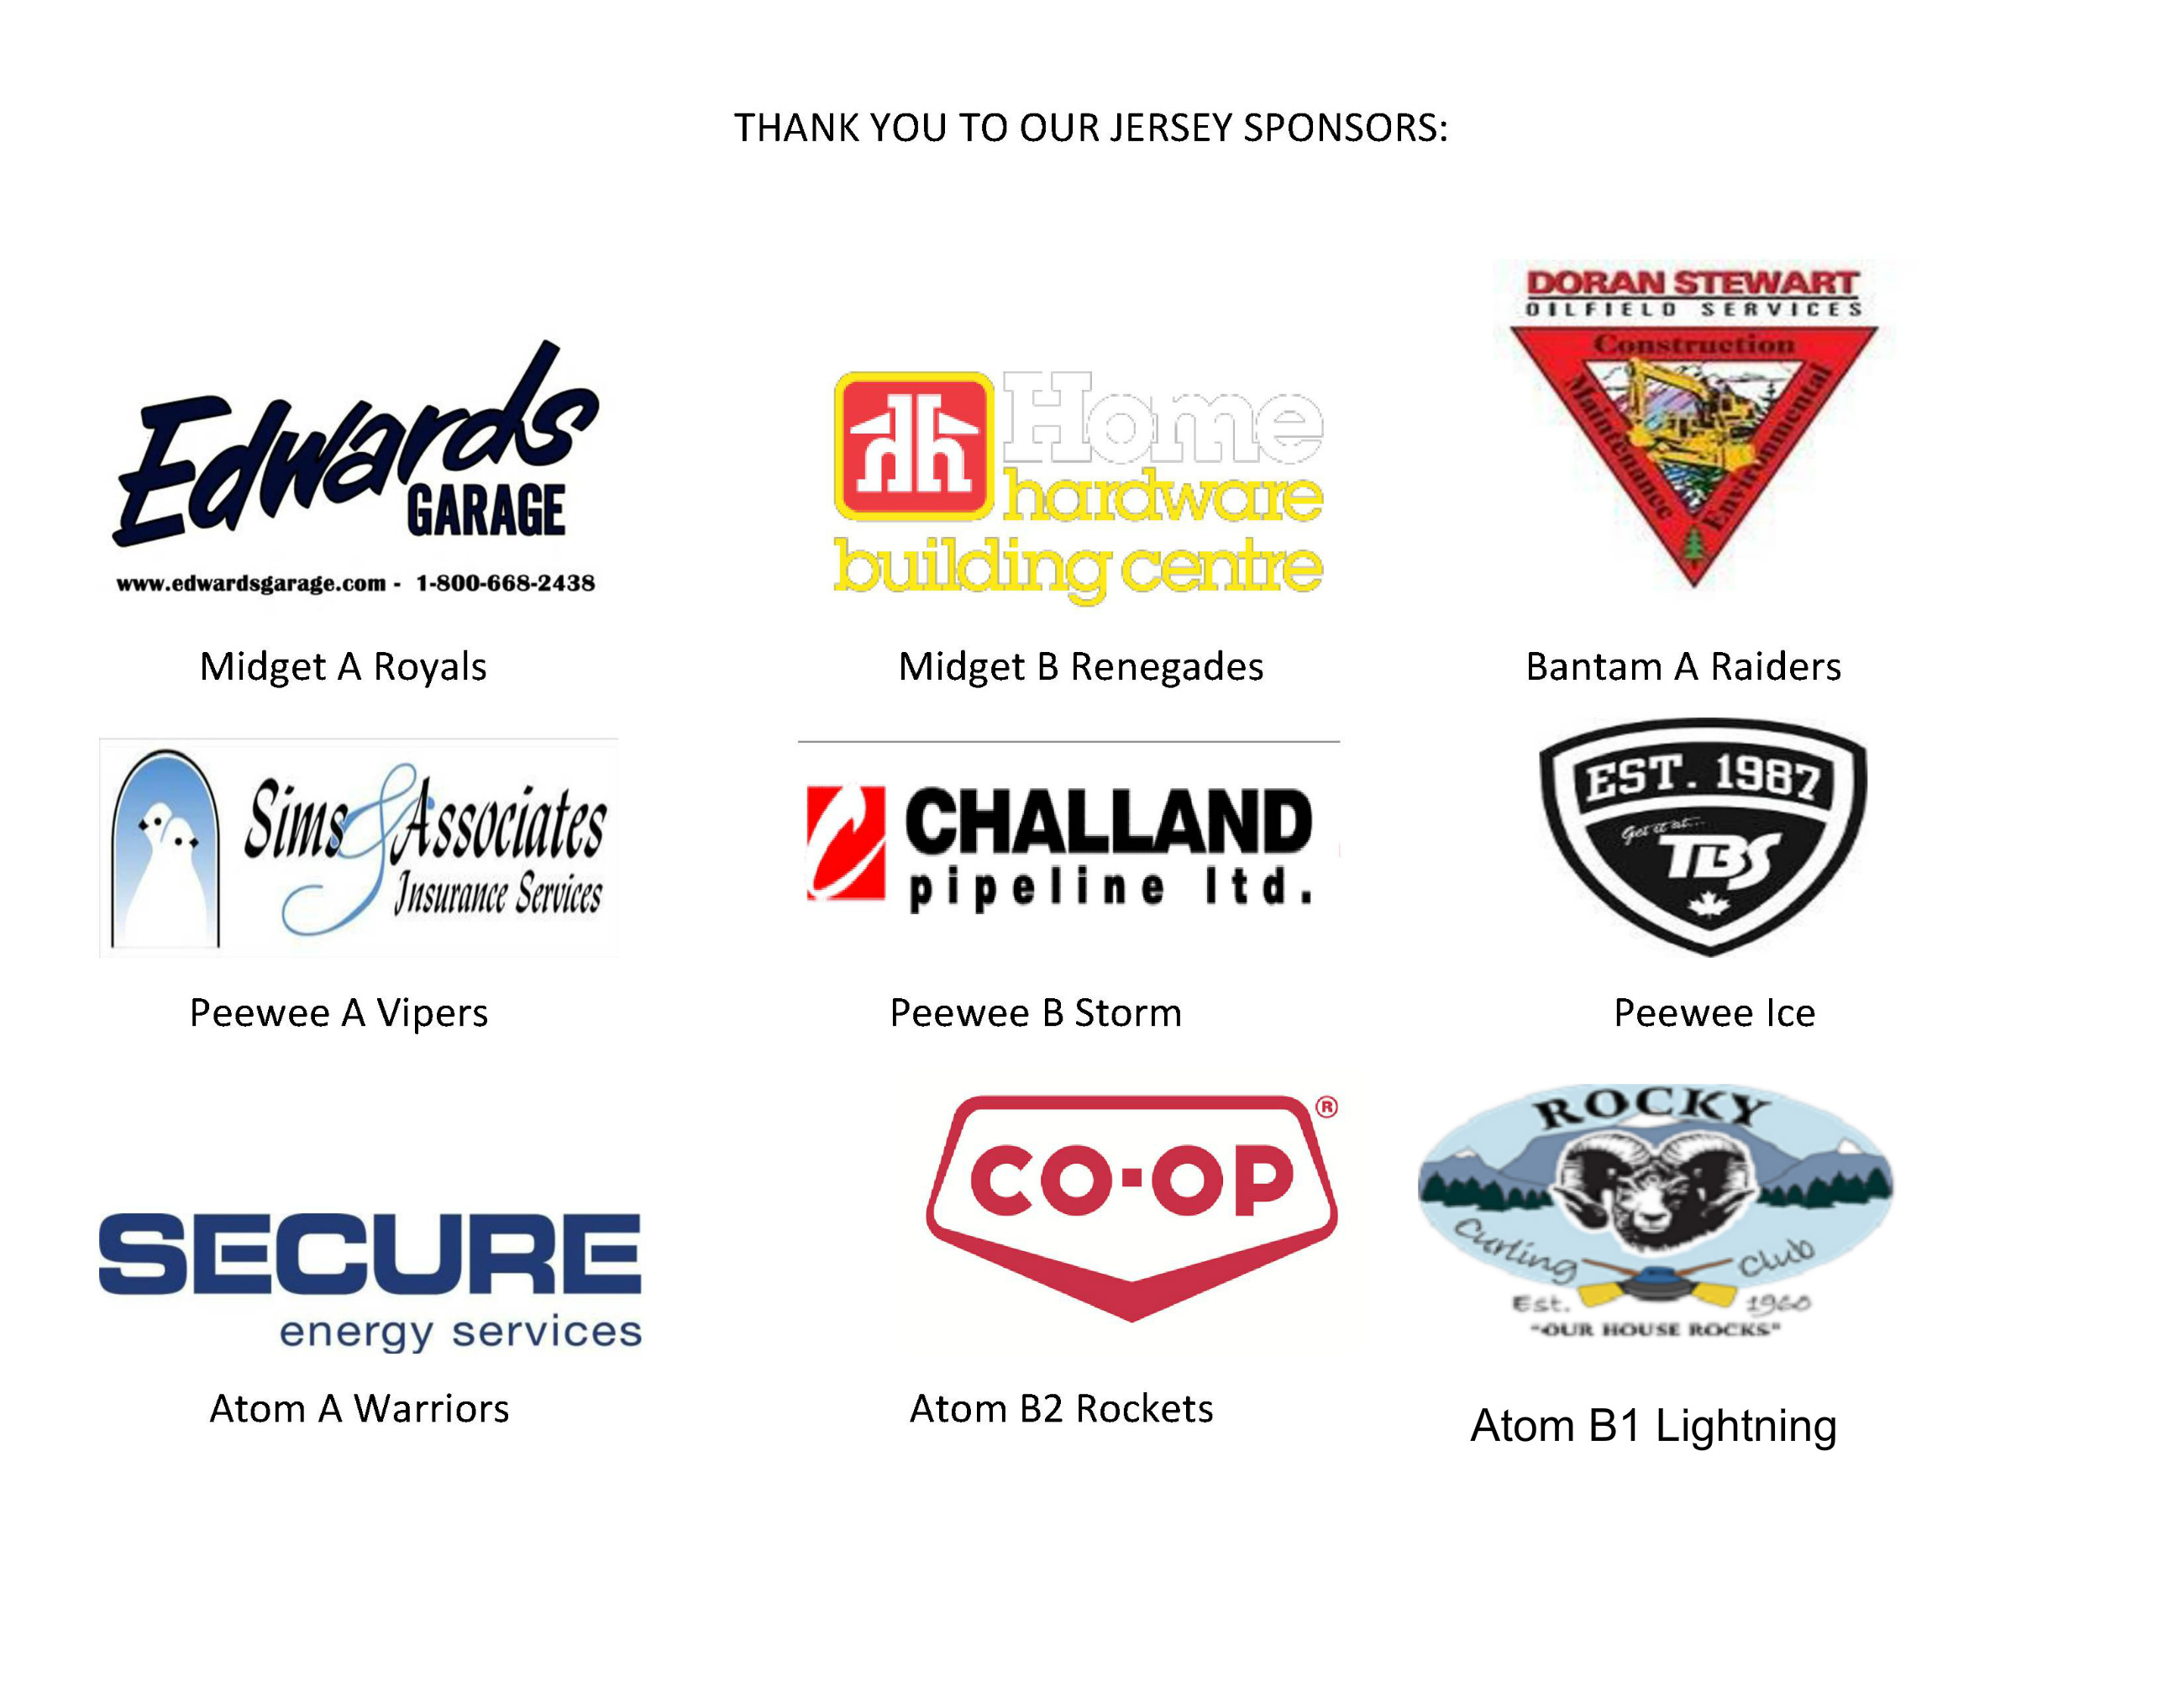 Thank you jersey sponsors!